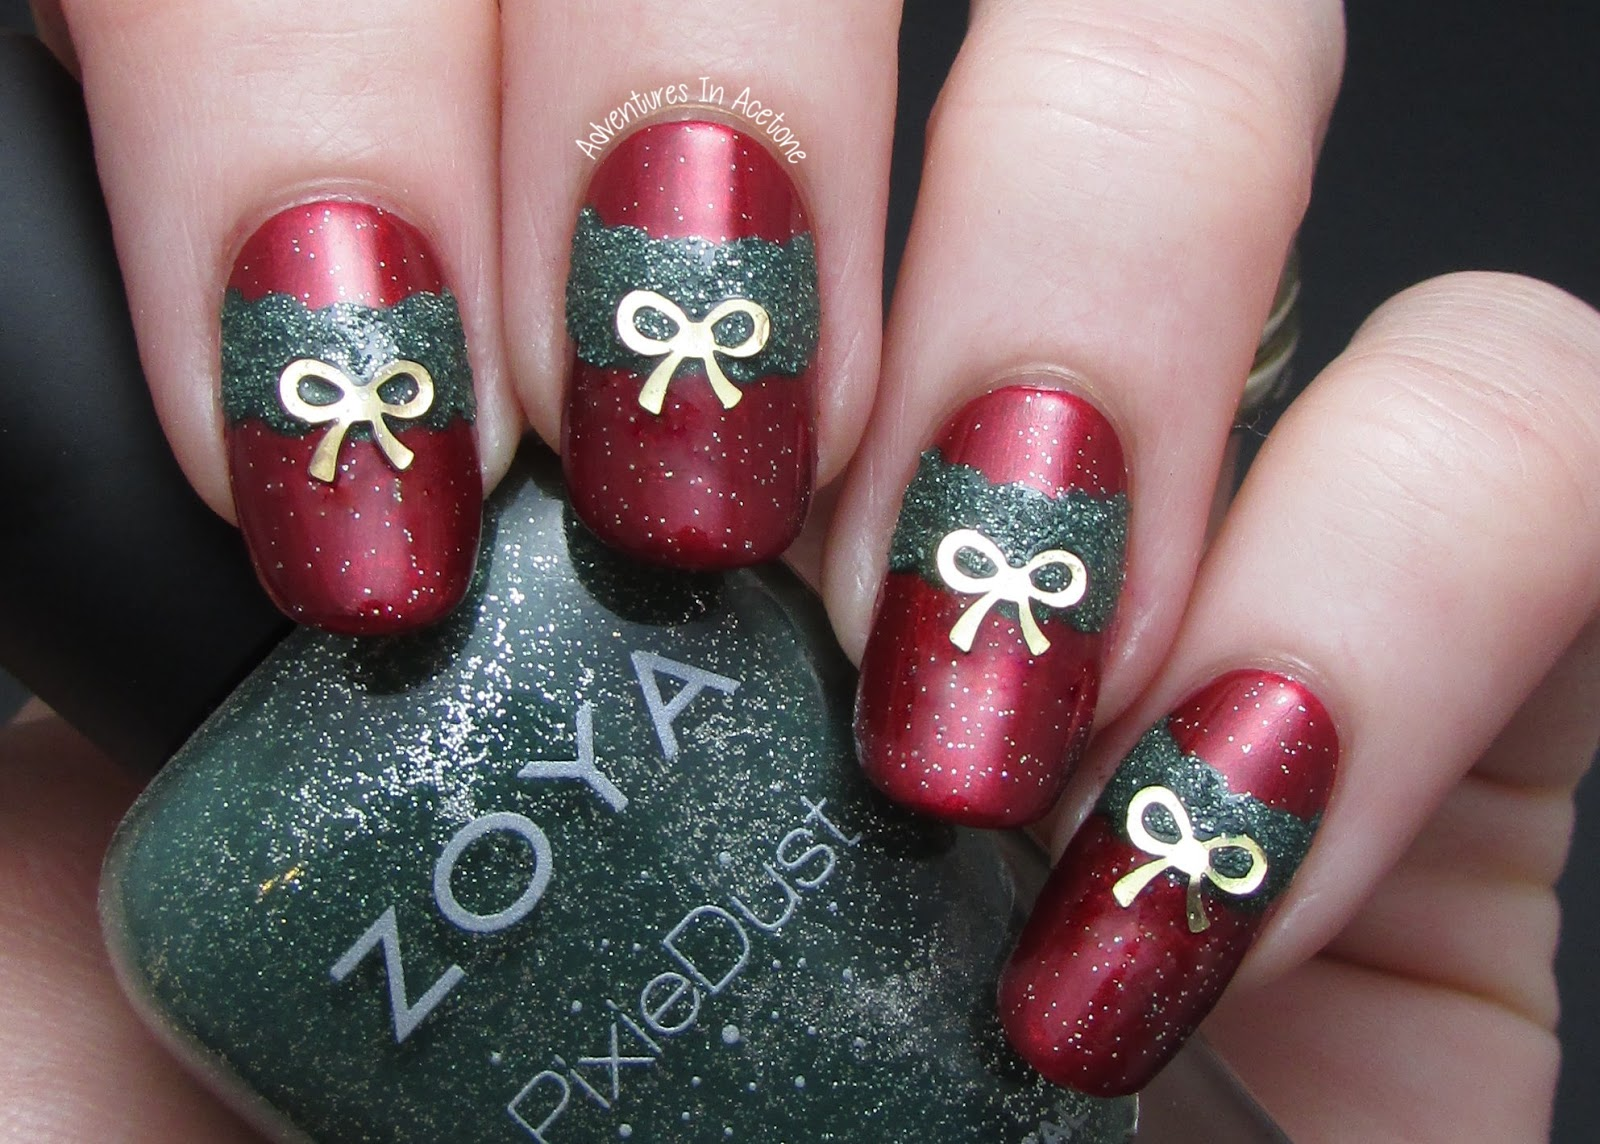 Christmas Nail Art Glitter : Sparkly and glitter nail art ideas in christmas spirit